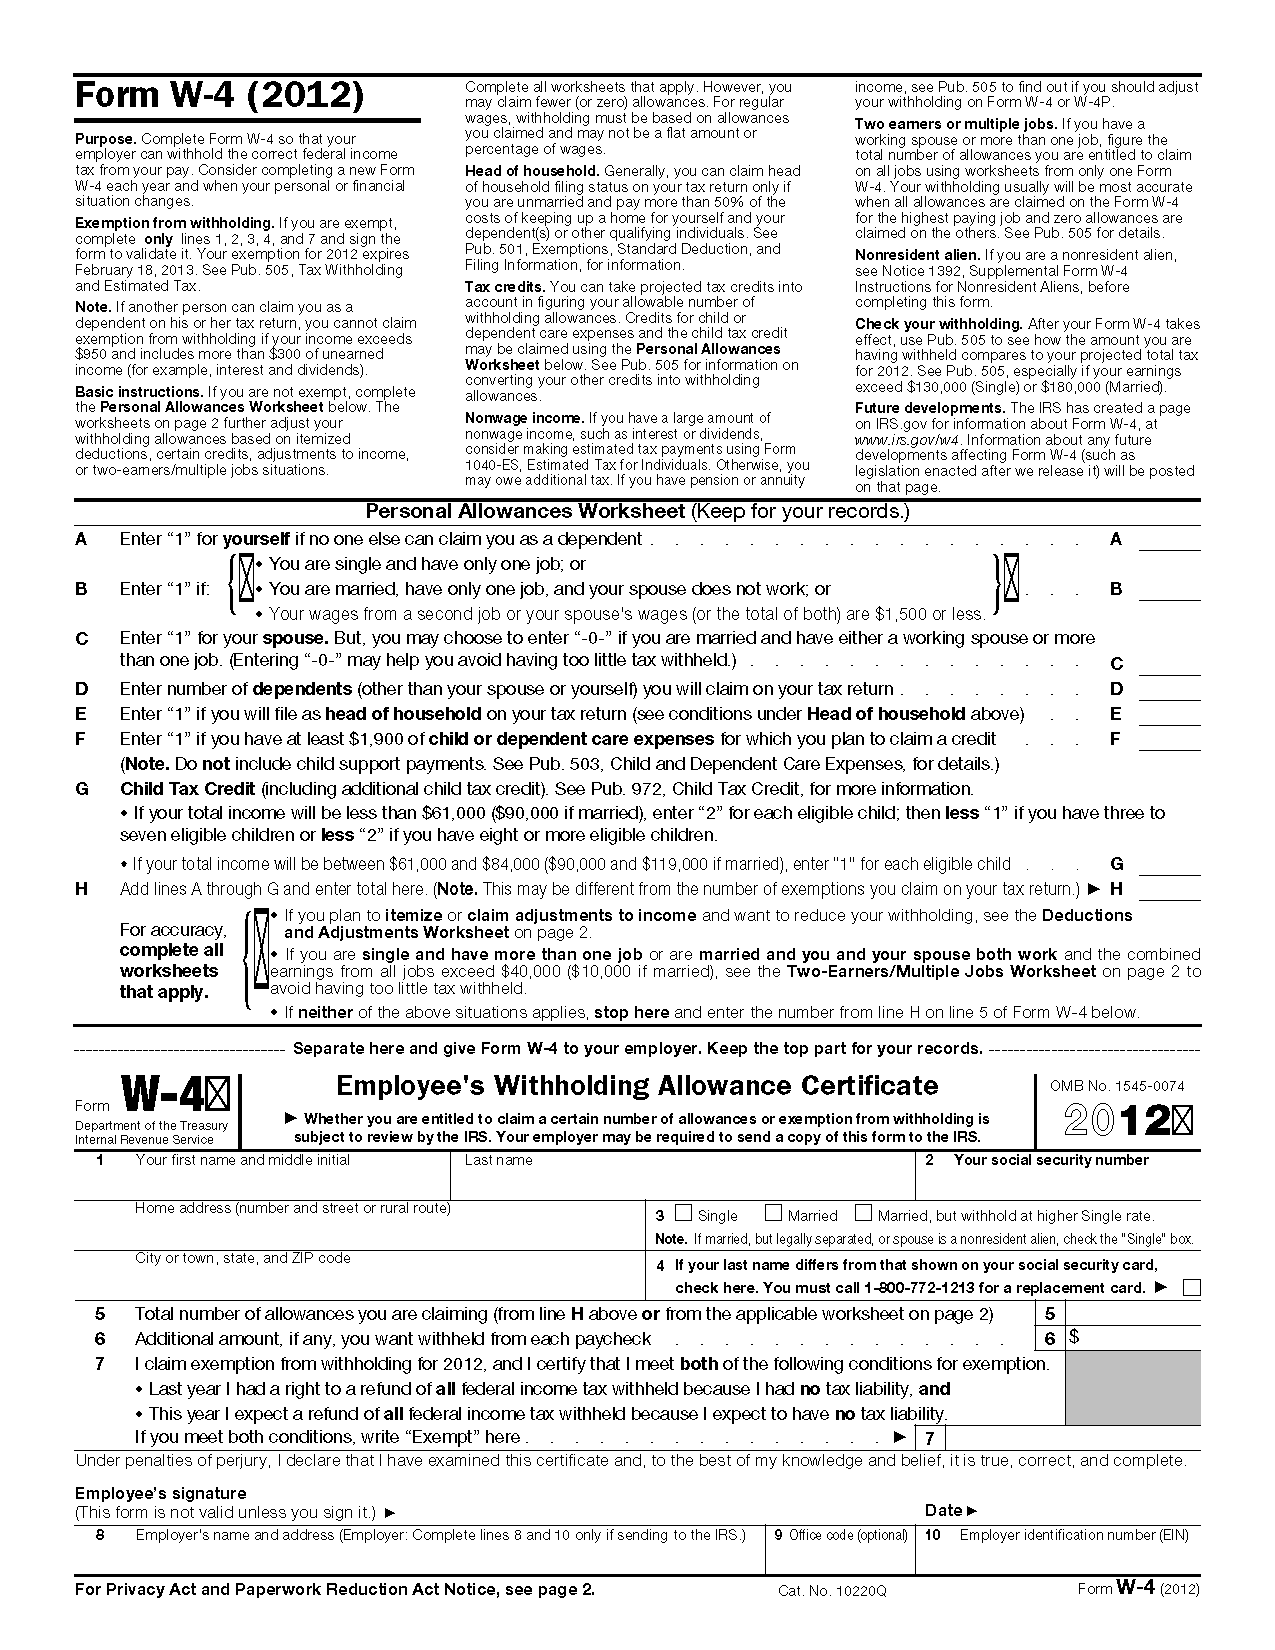 Worksheet Personal Allowances Worksheet allowances worksheet fireyourmentor free printable worksheets form w 4 personal 10220q 2009 2